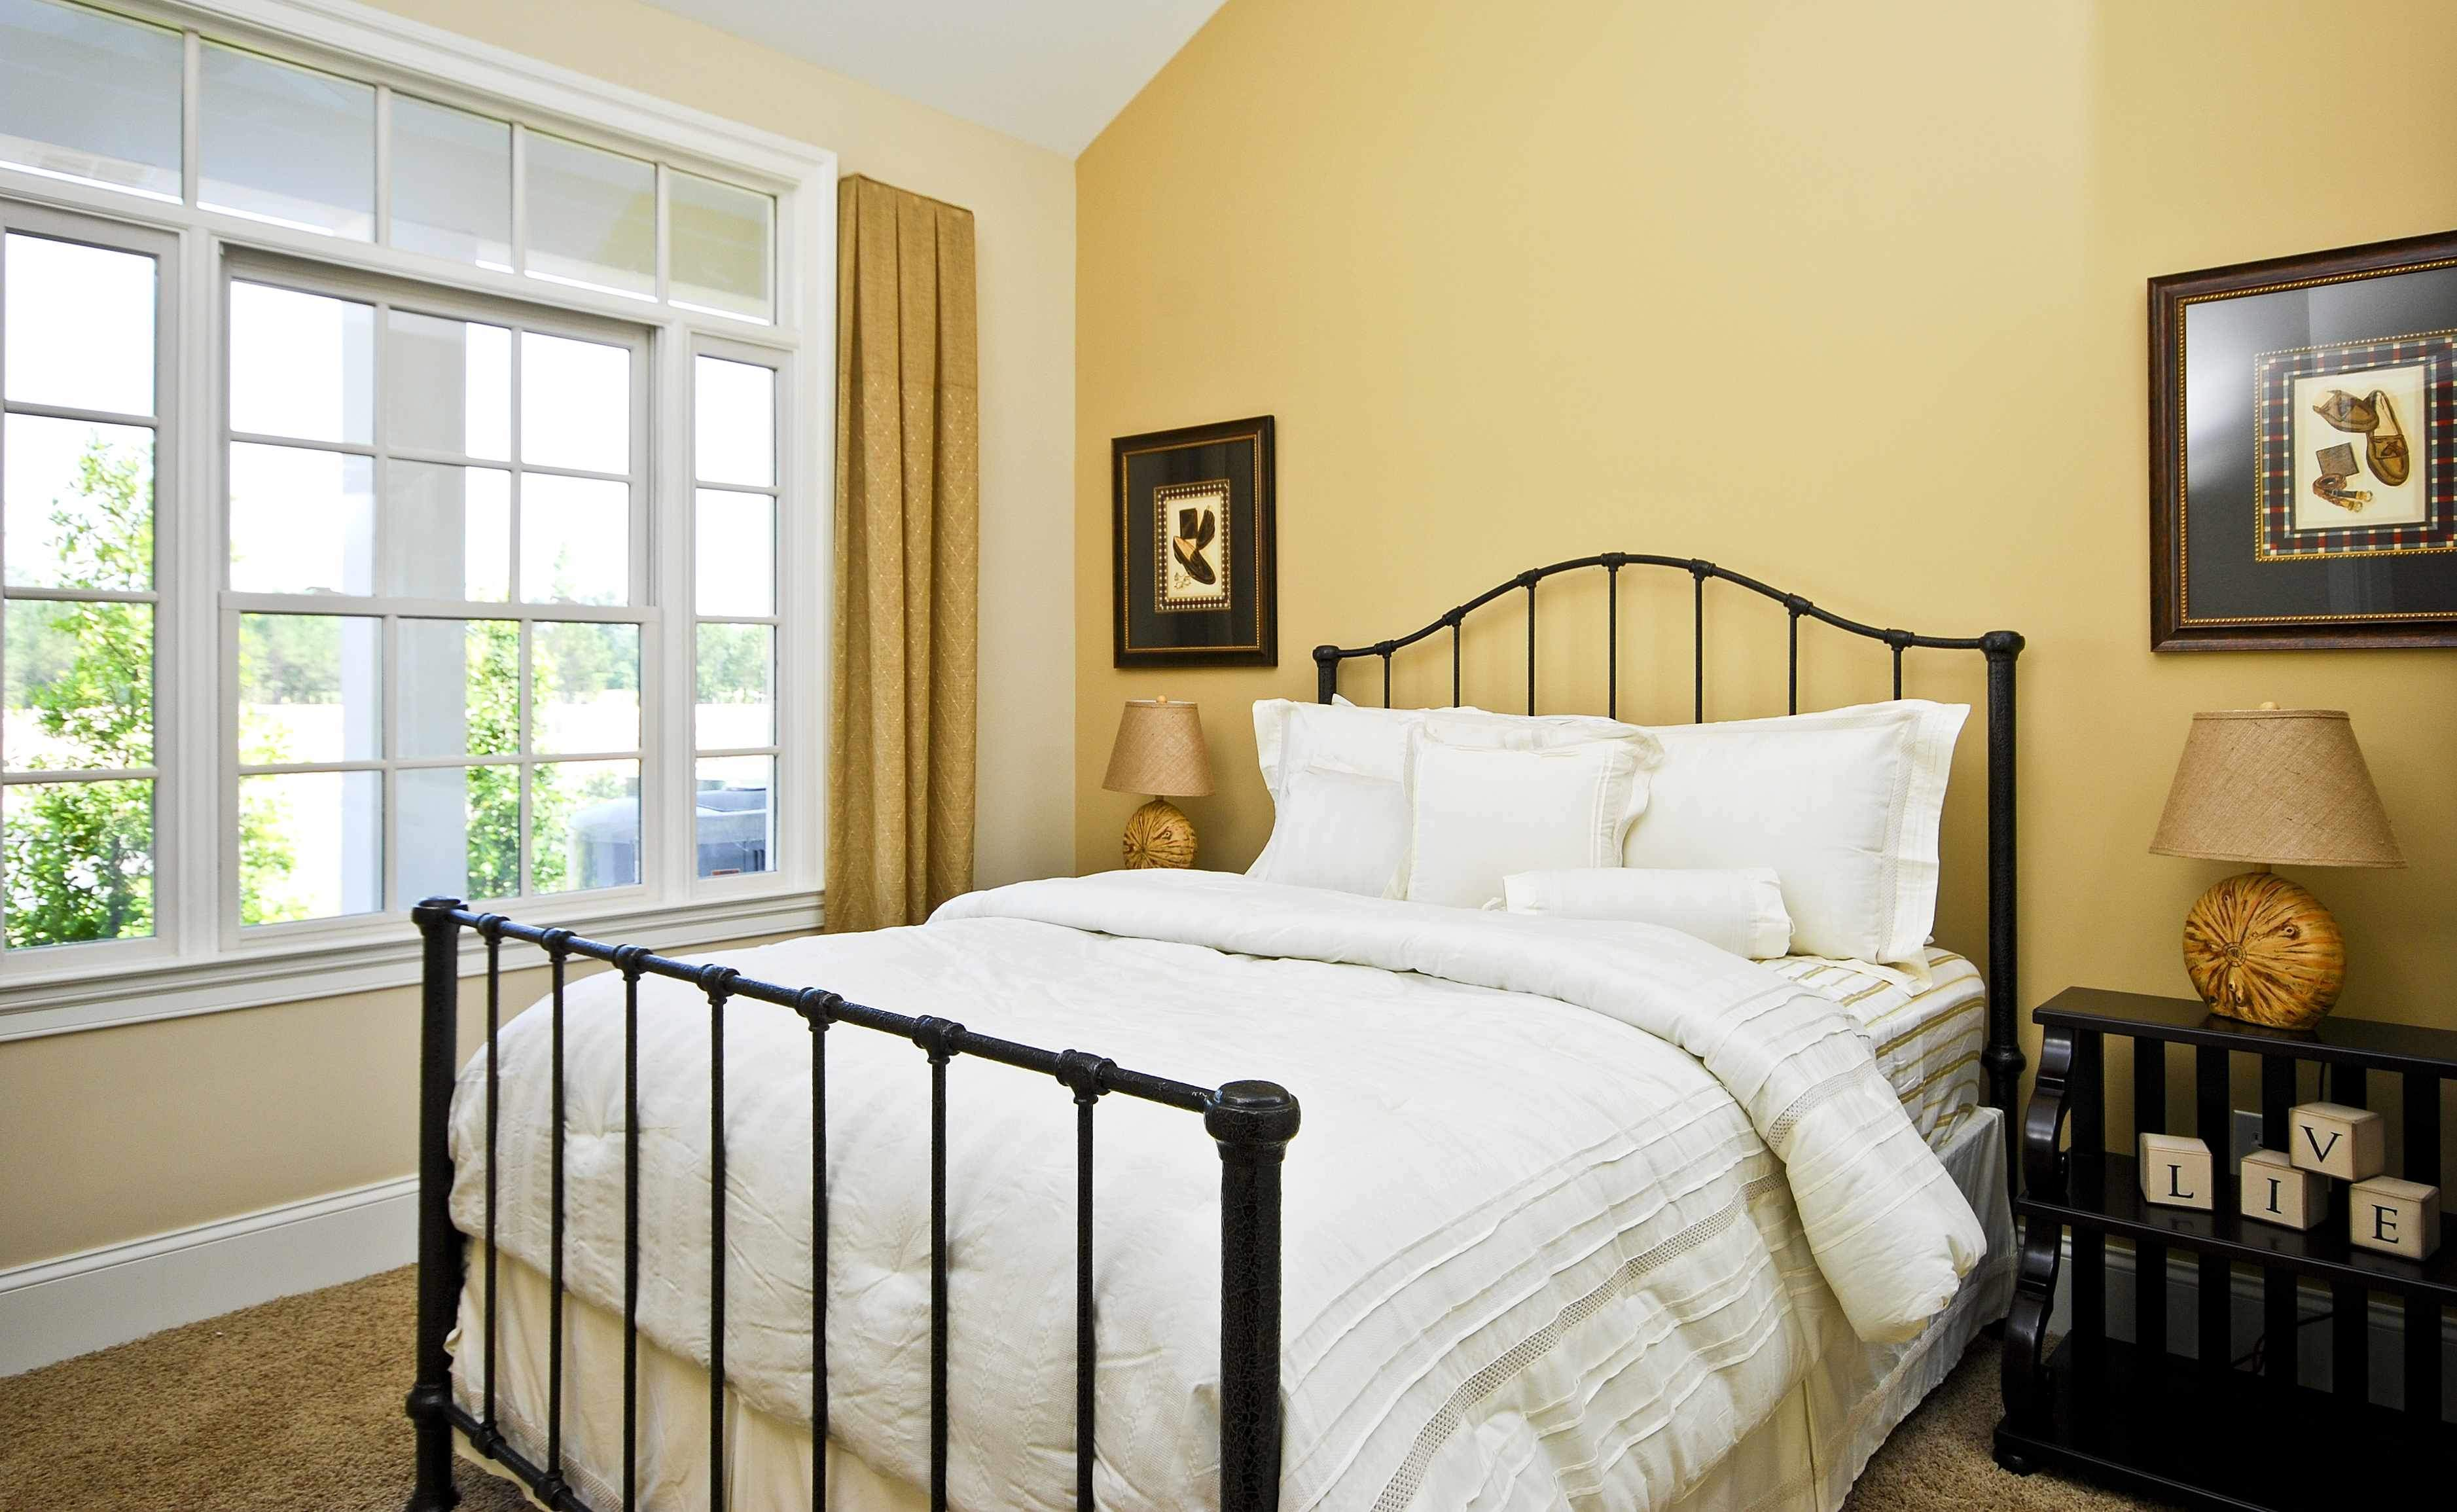 Trend Best Interior House Designs With Magnificent Interior Bedroom Designer Featuring Oak Unfinished Fascinating Warm Color Paint On The Modern Ideas With Black Iron Bed Bedroom Closet Designs New House Design Ide